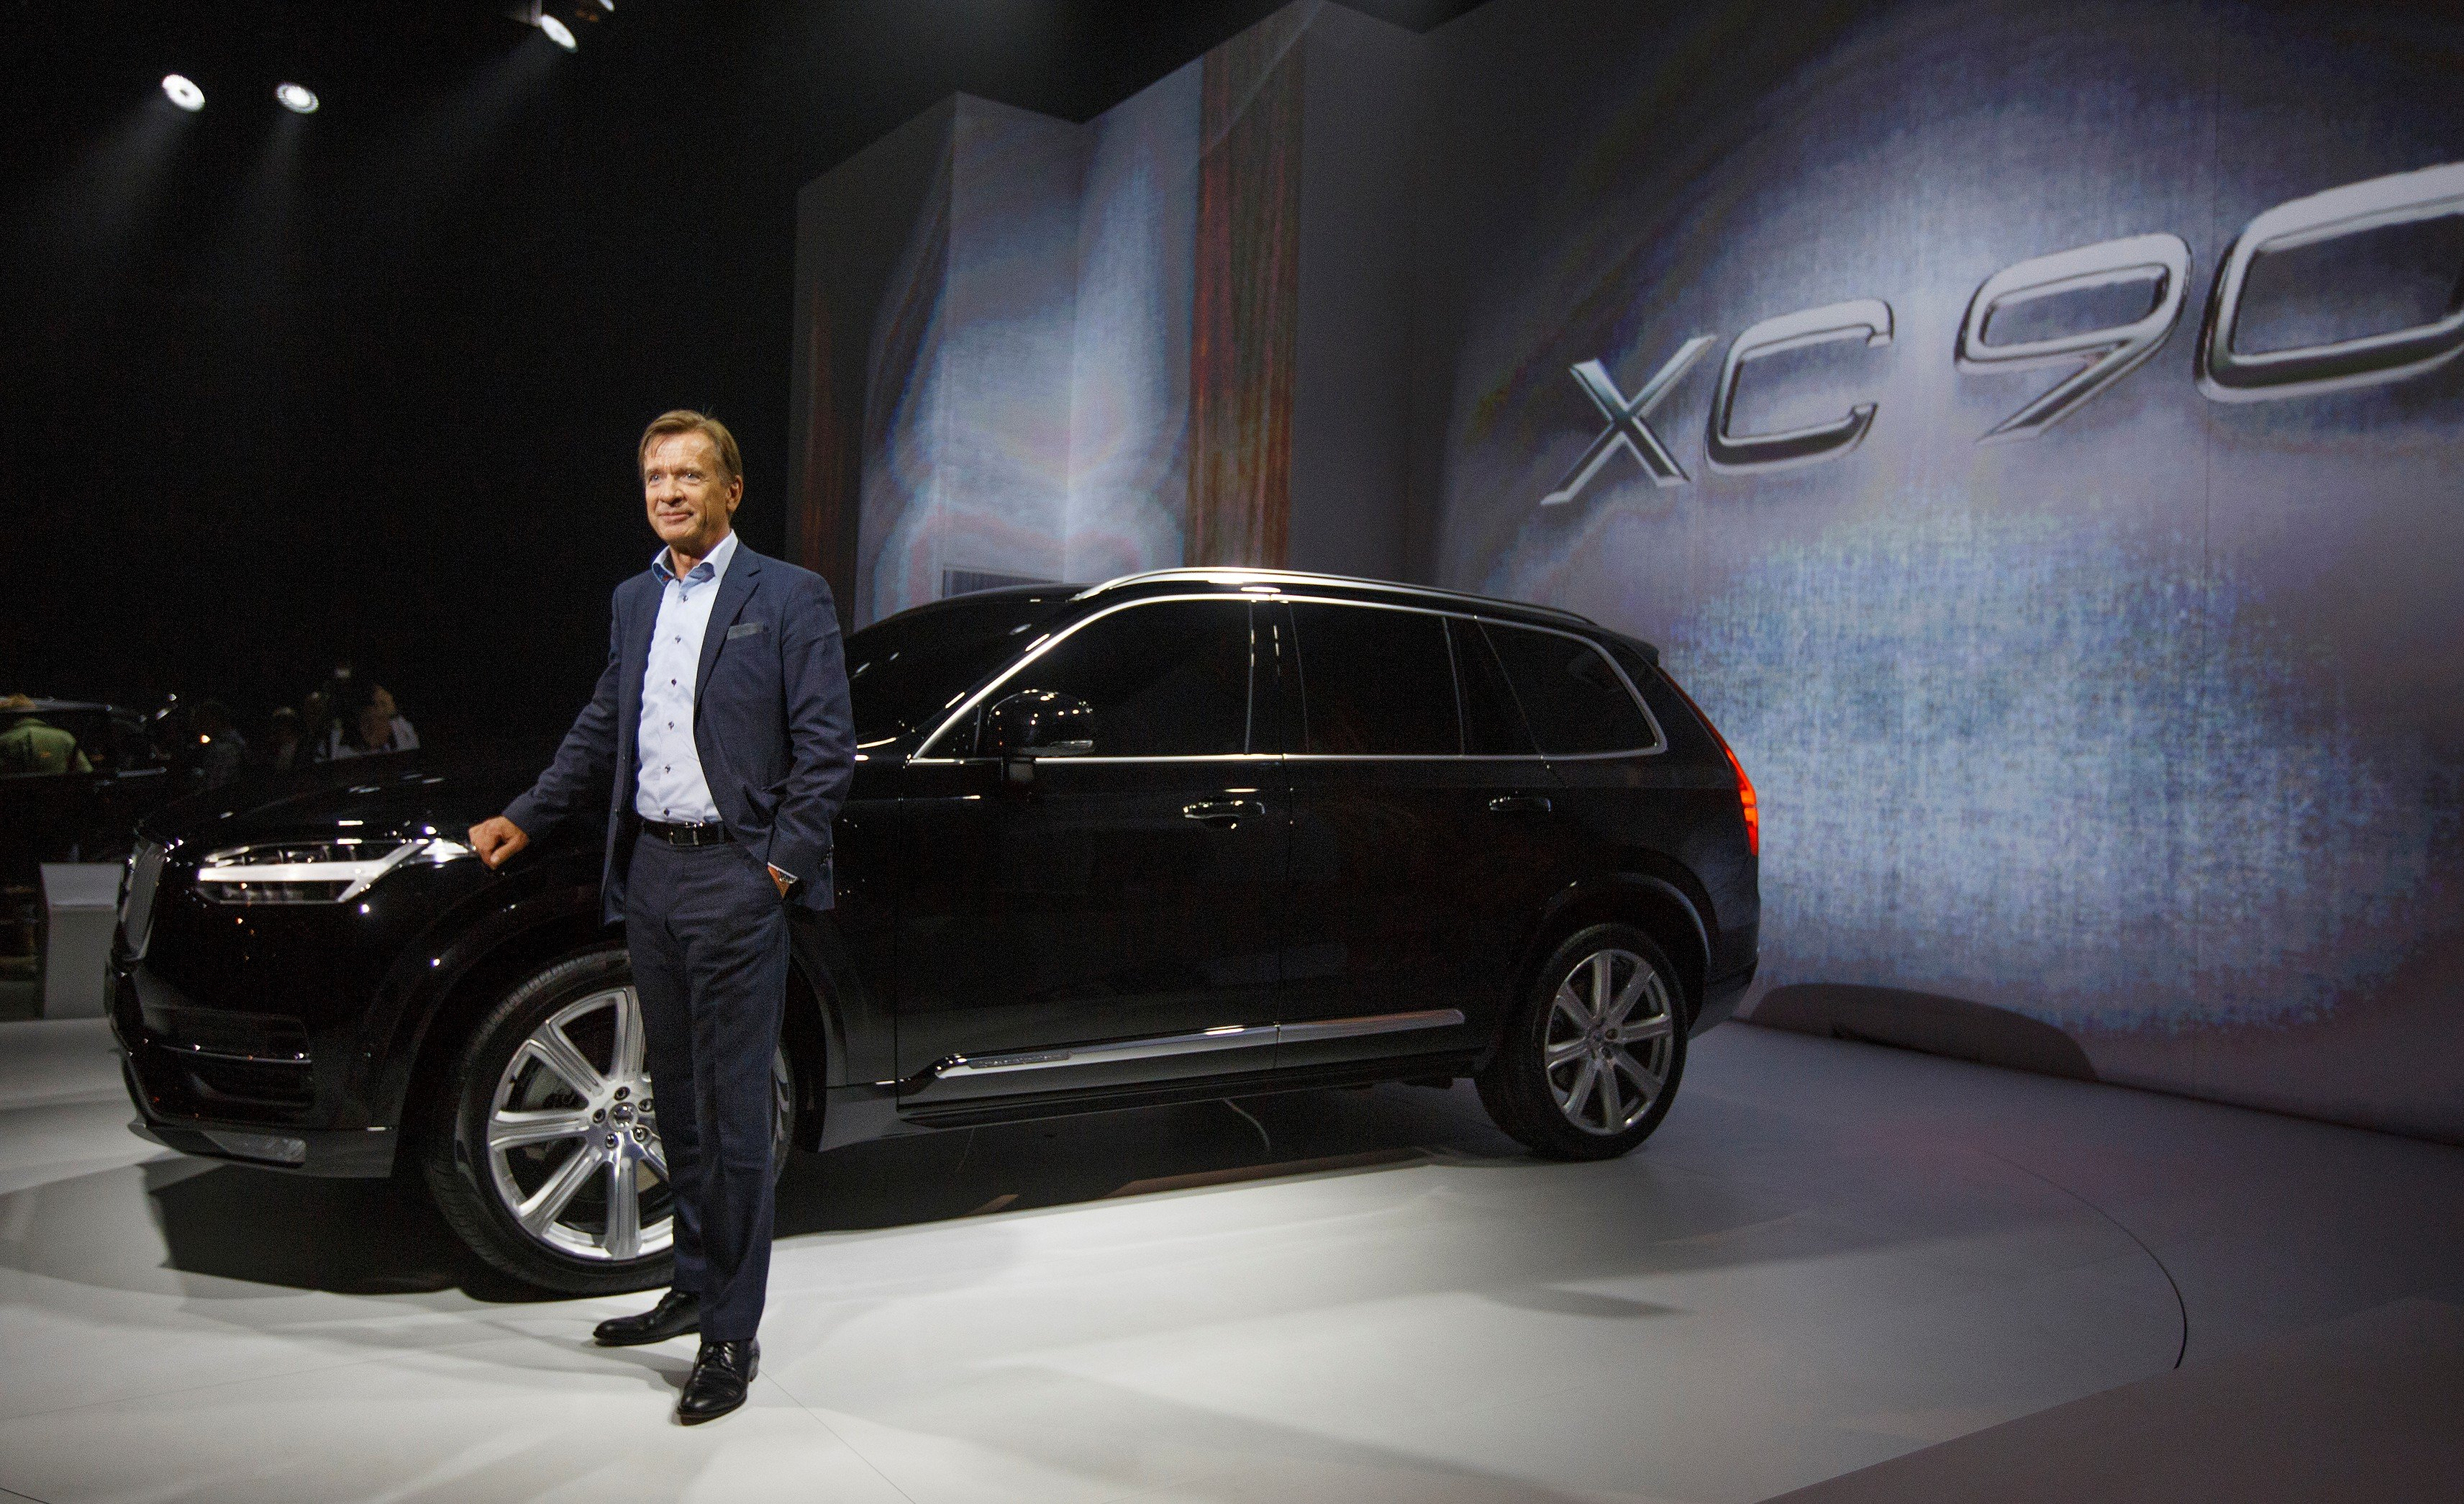 Hakan Samuelsson CEO introduces Volvo ' s XC90. Image Credit: Volvo